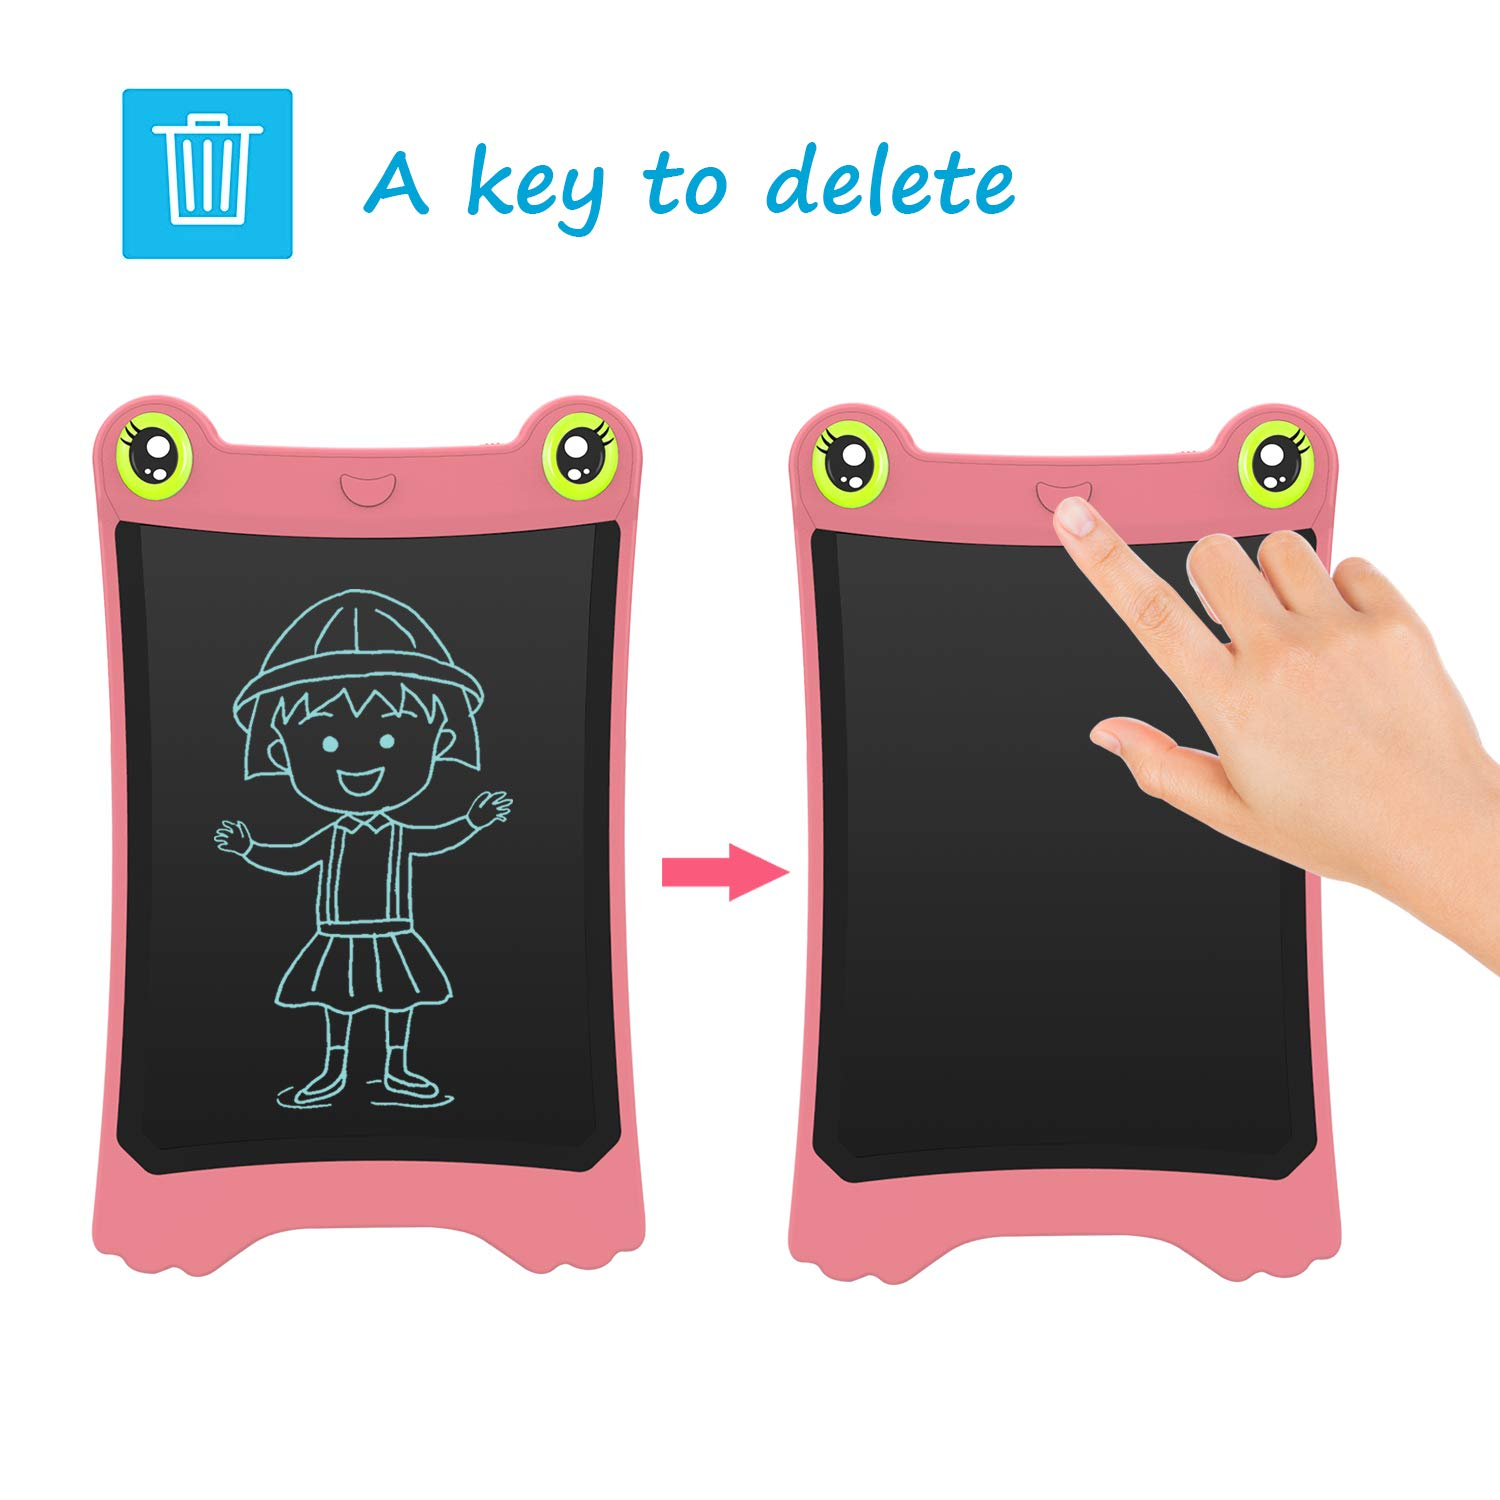 NEWYES 8.5 Inch LCD Writing Tablet Updated Frog Pad Children Electronic Doodle Board Jot Digital E-Writer Kids Scribble Toy with Lock Function Pink by NEWYES (Image #4)